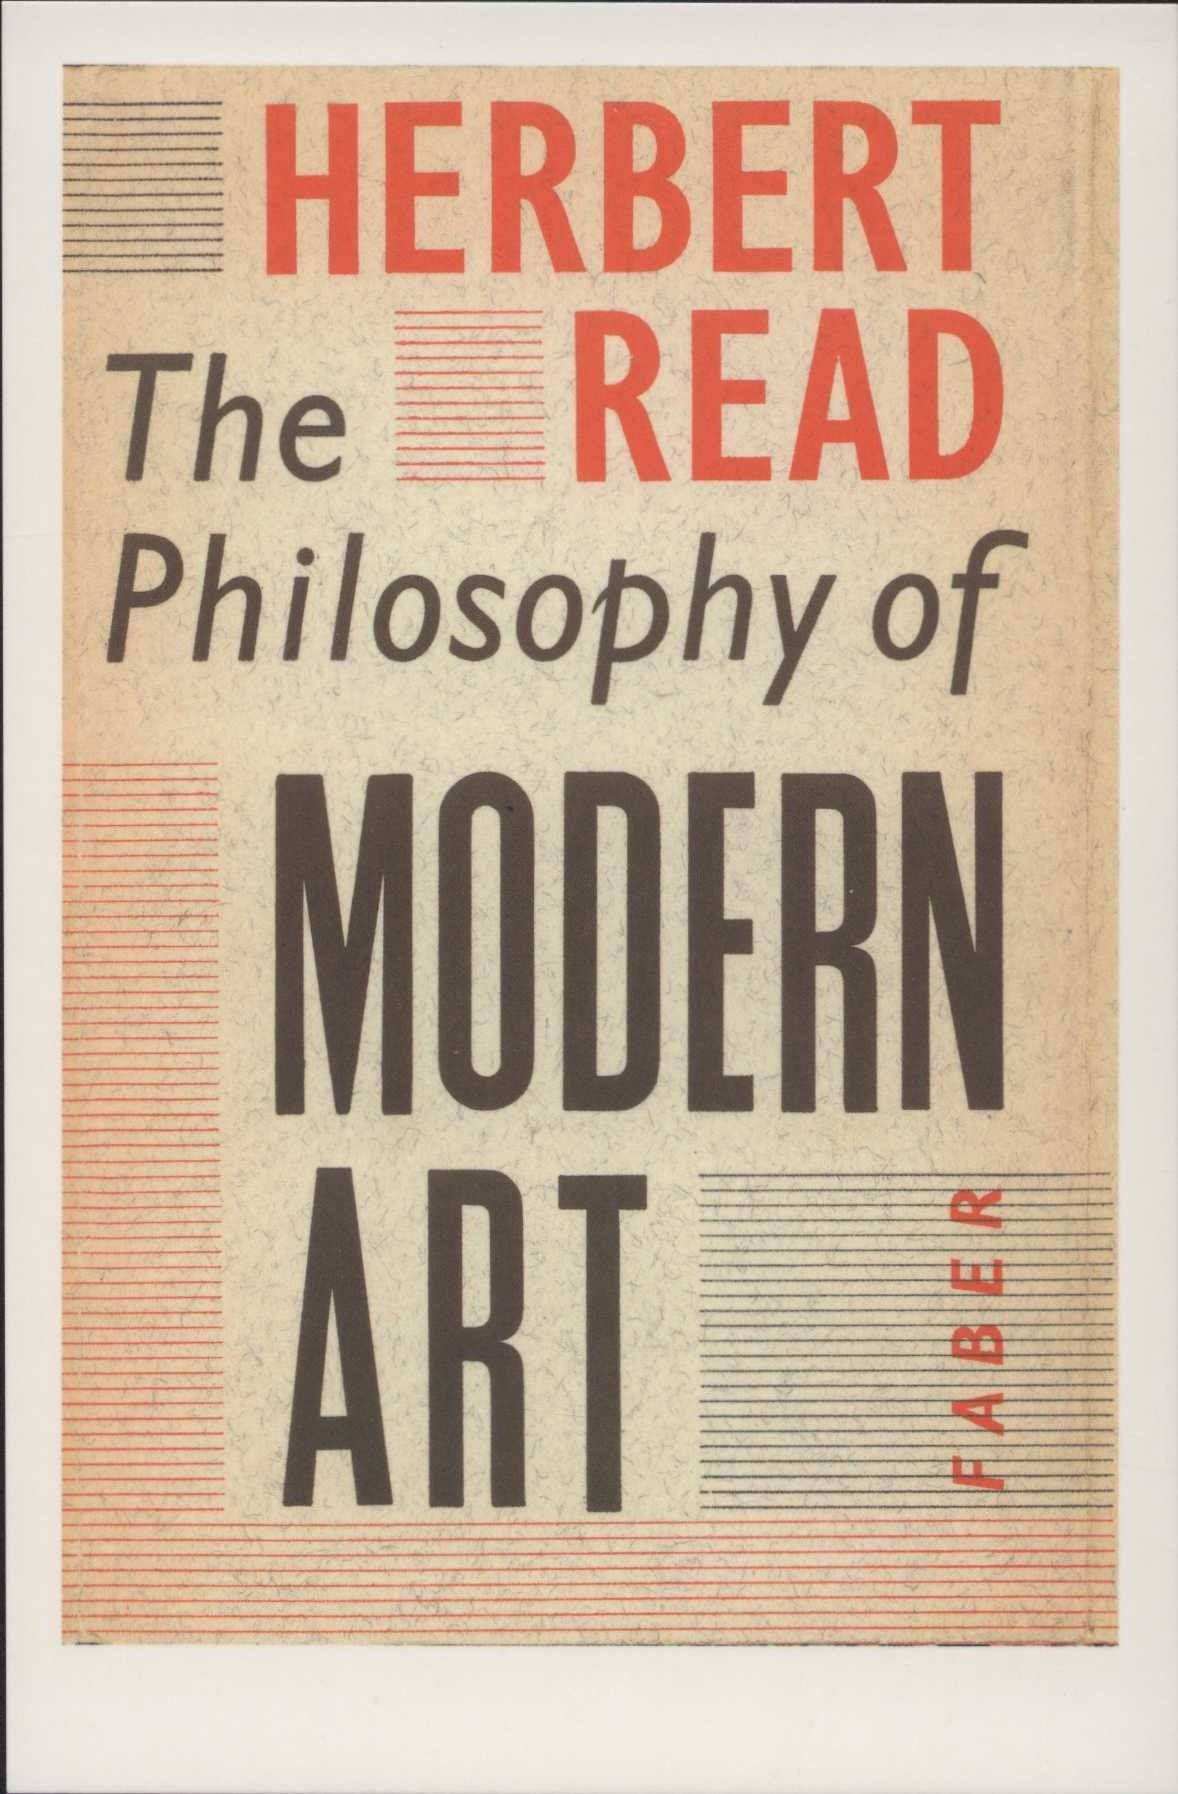 Faber Archive Classic Book Cover Herbert Read The Philosophy Of Modern Art 1952 Berthold Wolpe Modern Post Modern Postcard Classic Books Unique Postcards